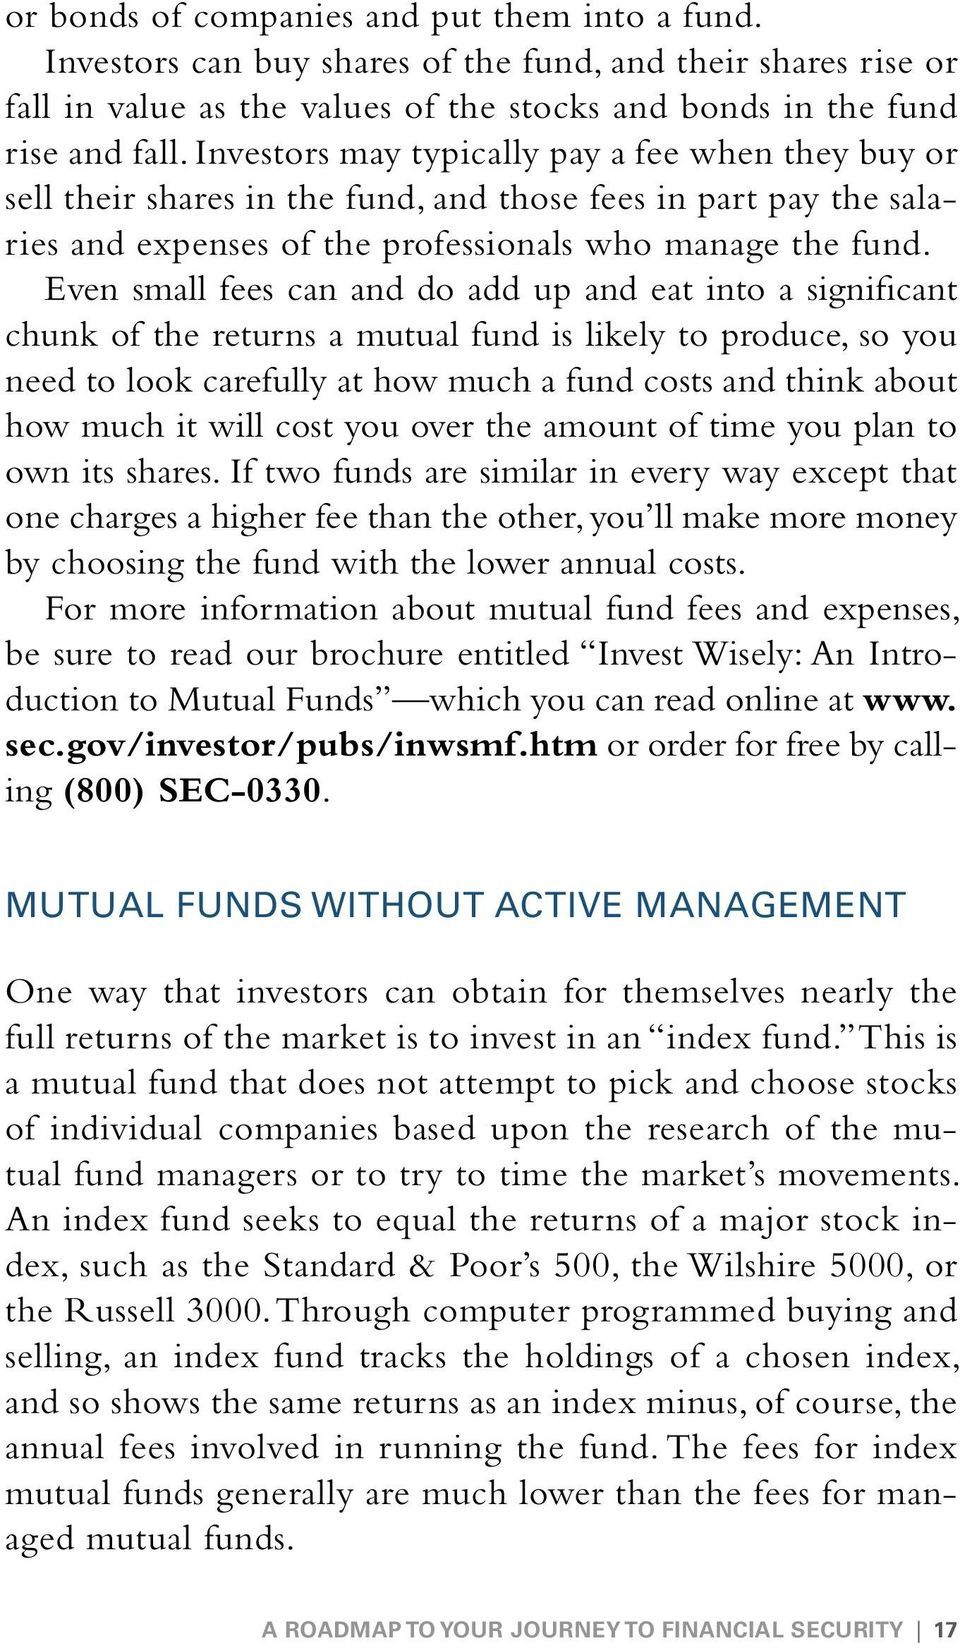 Even small fees can and do add up and eat into a significant chunk of the returns a mutual fund is likely to produce, so you need to look carefully at how much a fund costs and think about how much